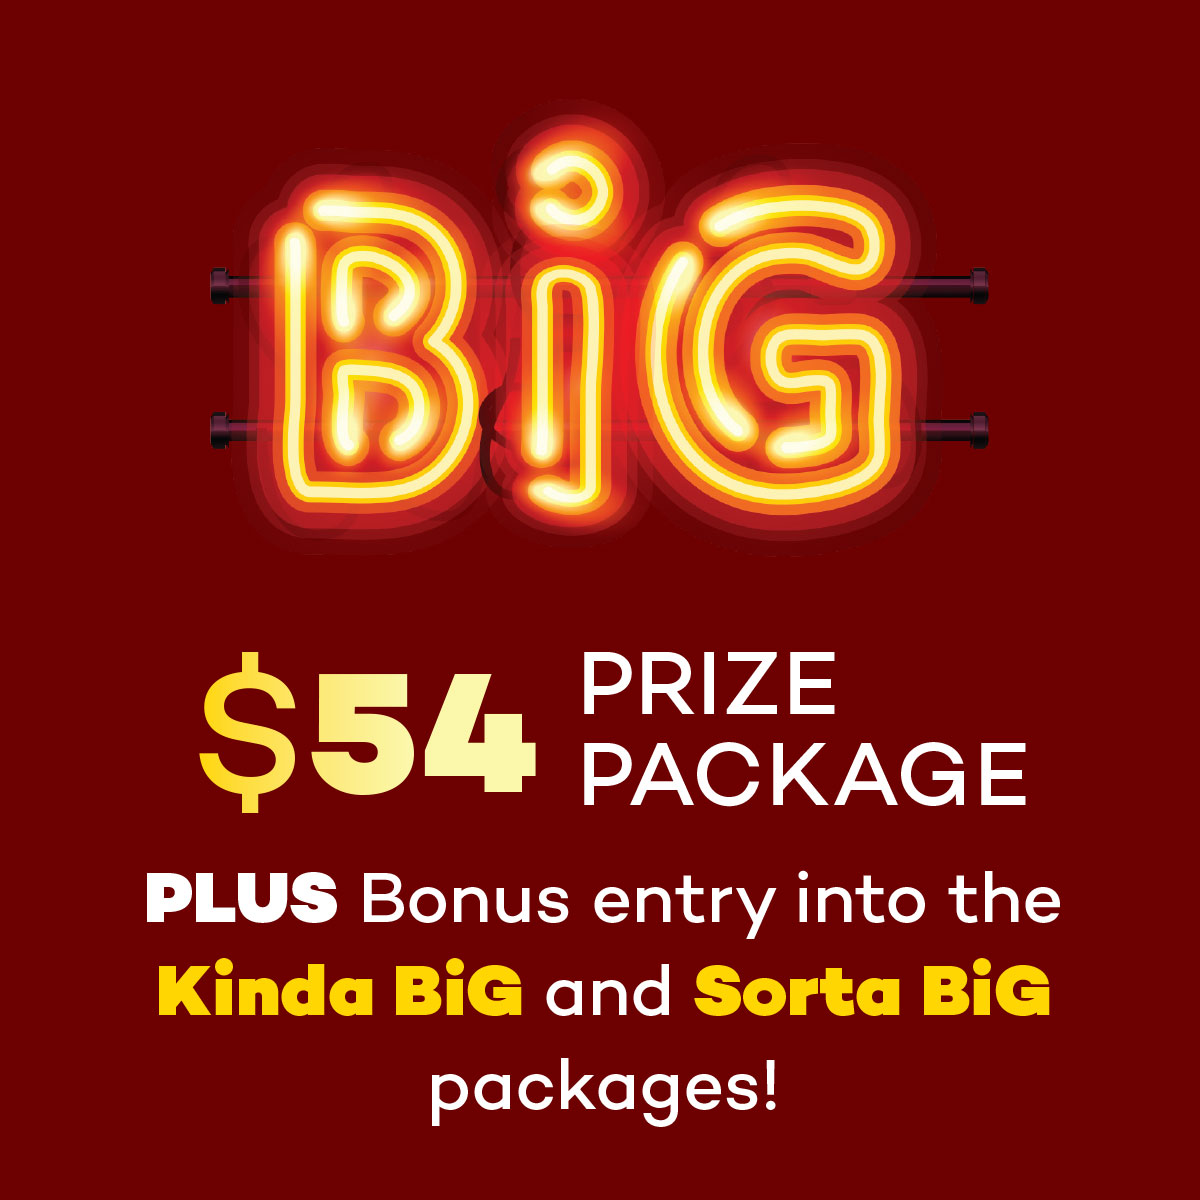 prize-packages-3.jpg